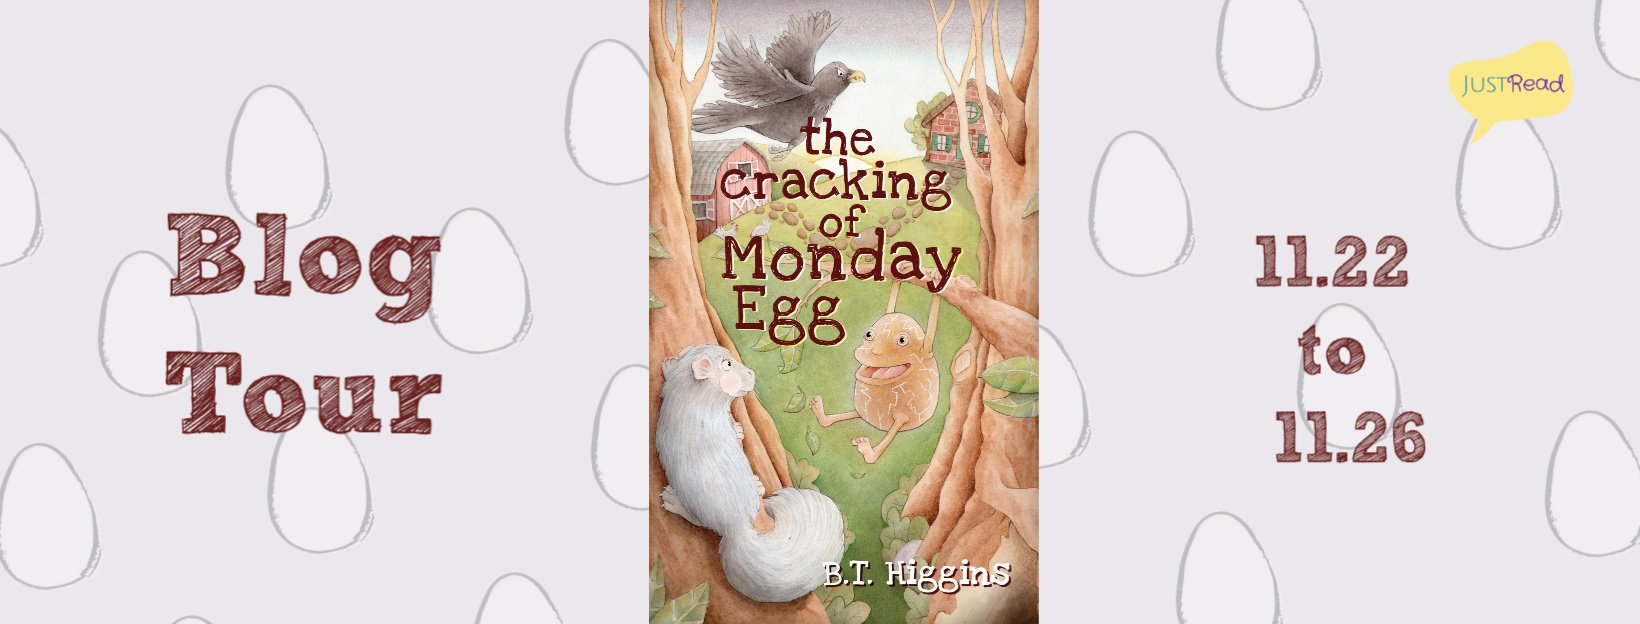 The Cracking of Monday Egg JR Blog Tour